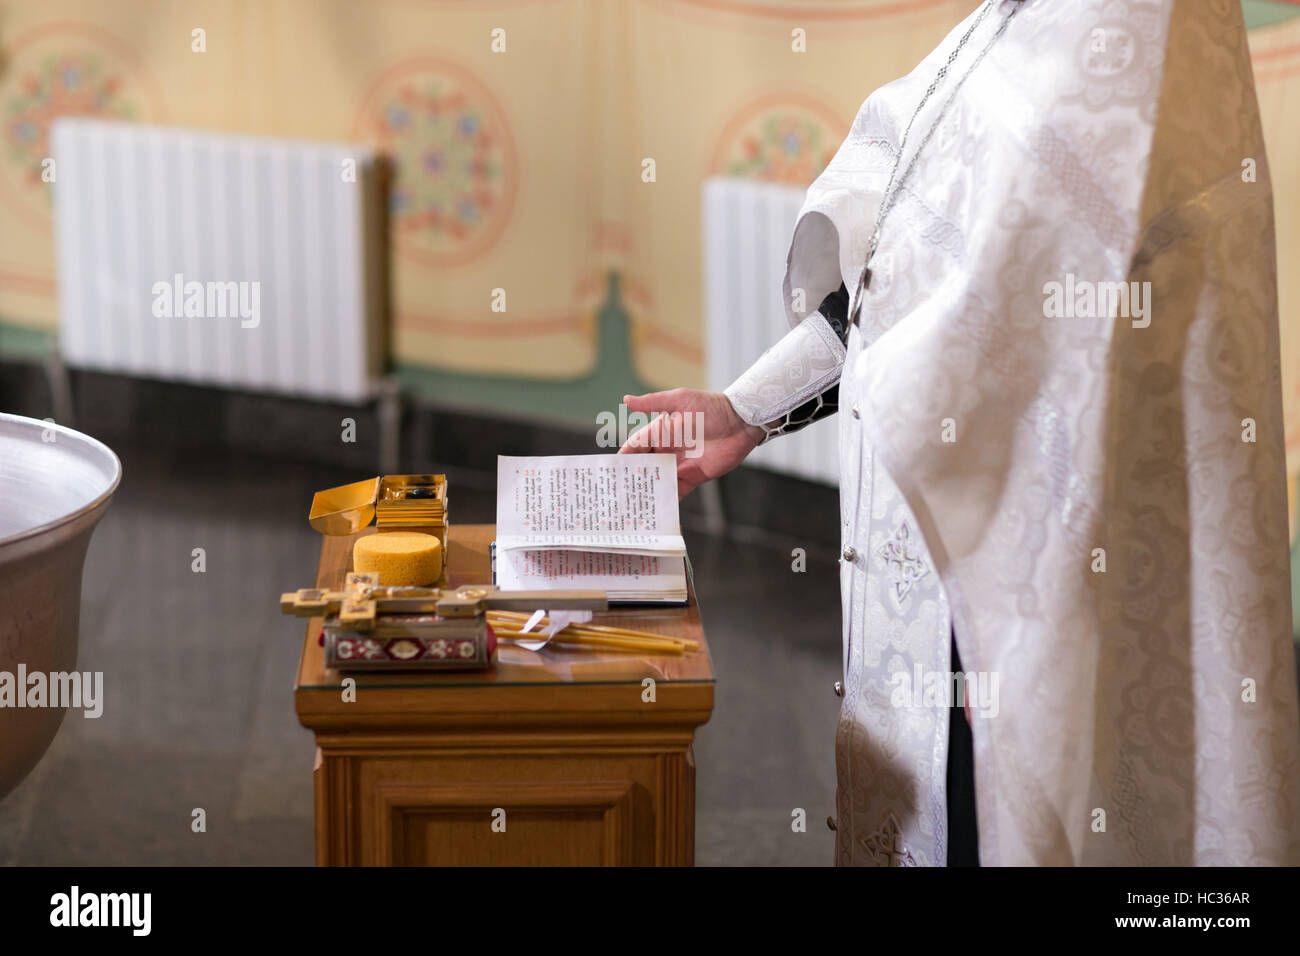 altar close-up. Interior Of Orthodox Church In Easter. baby christening. Ceremony a in Christian . bathing the into - Stock Image